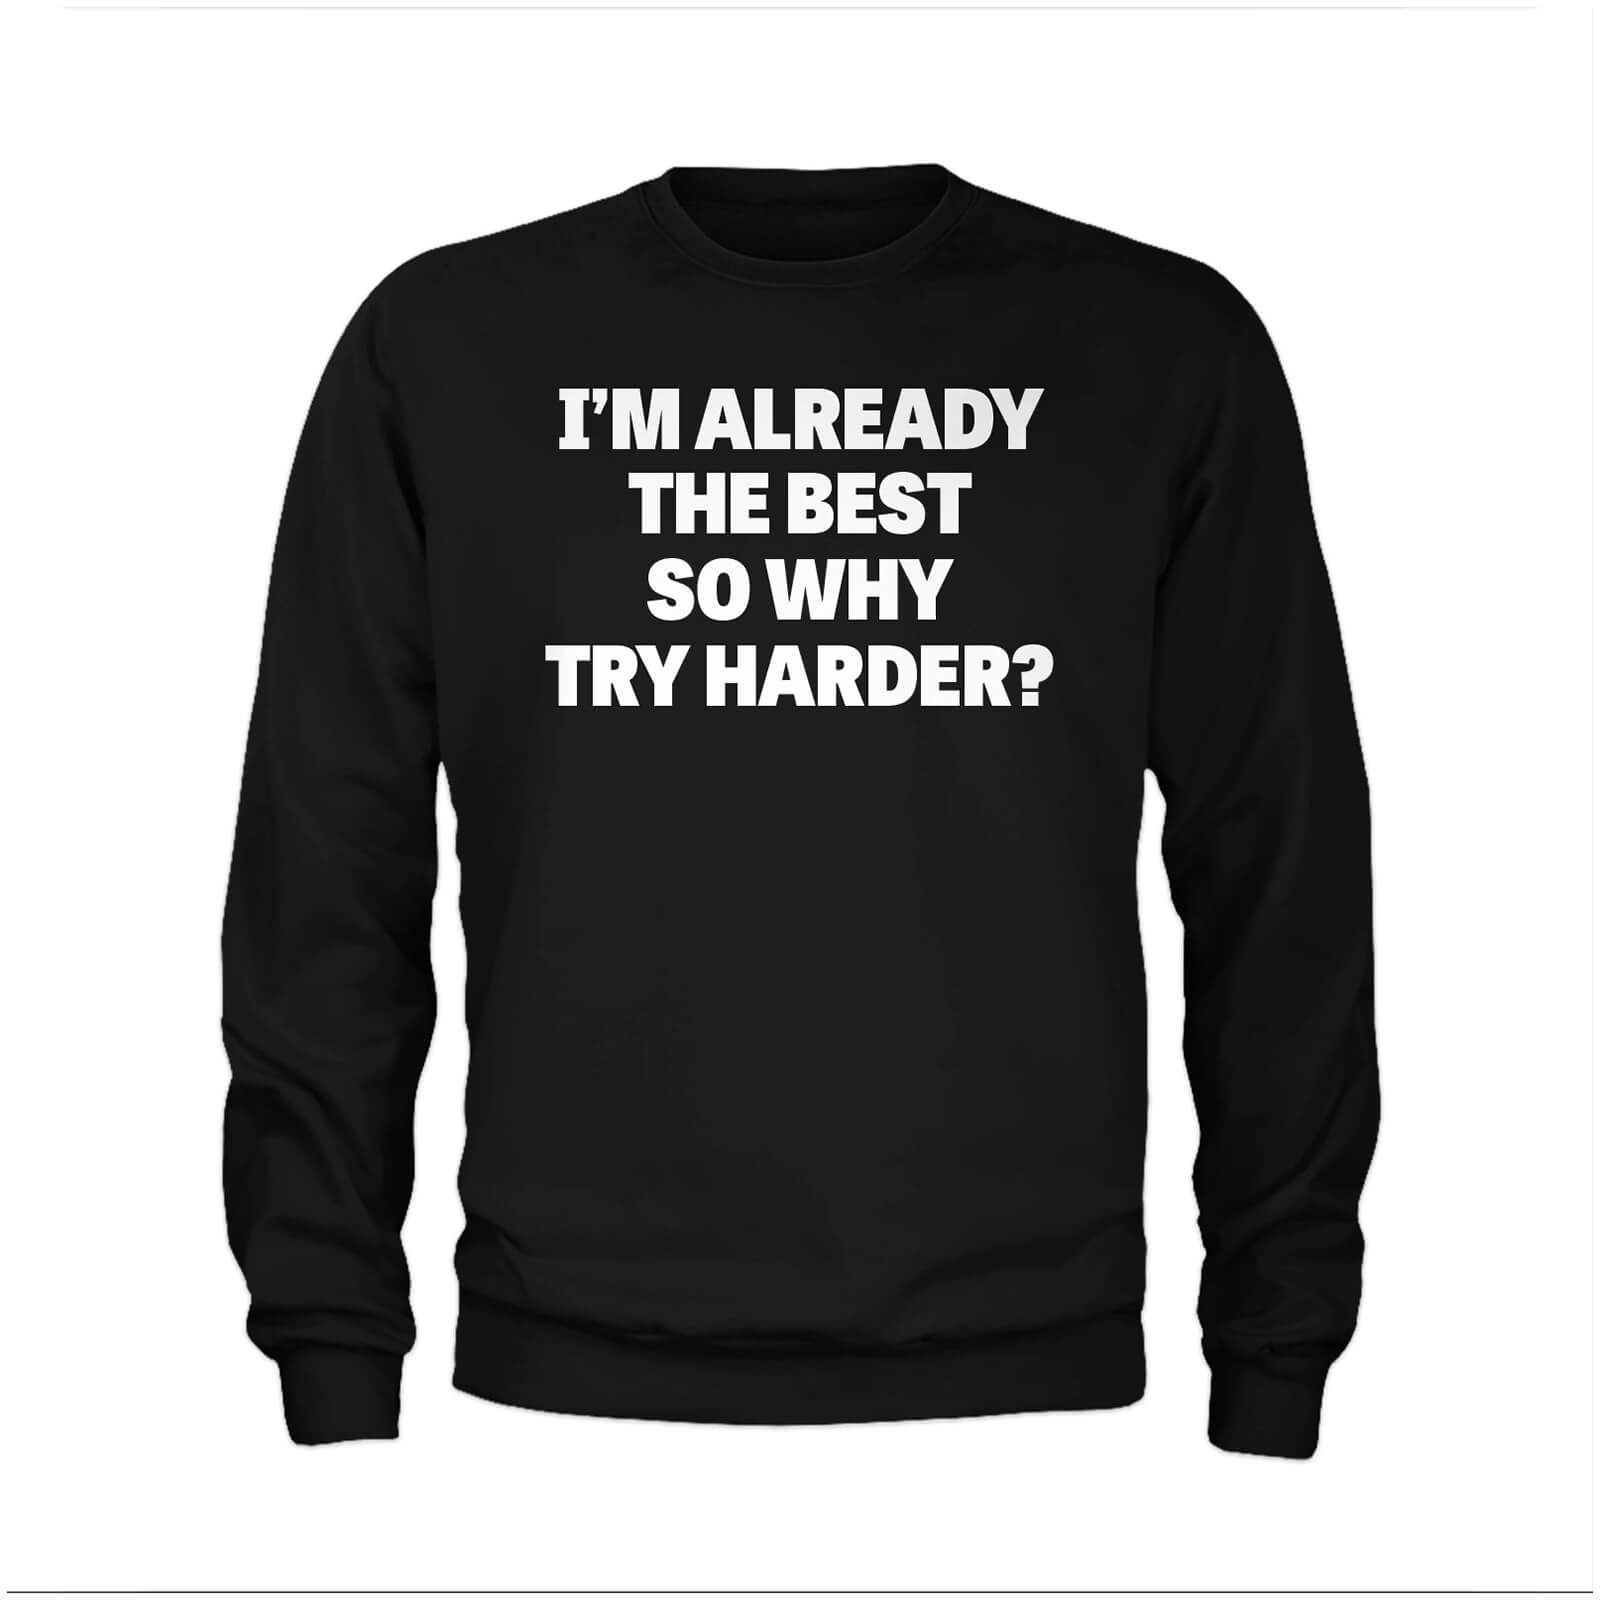 The Best Slogan Sweatshirt - Black